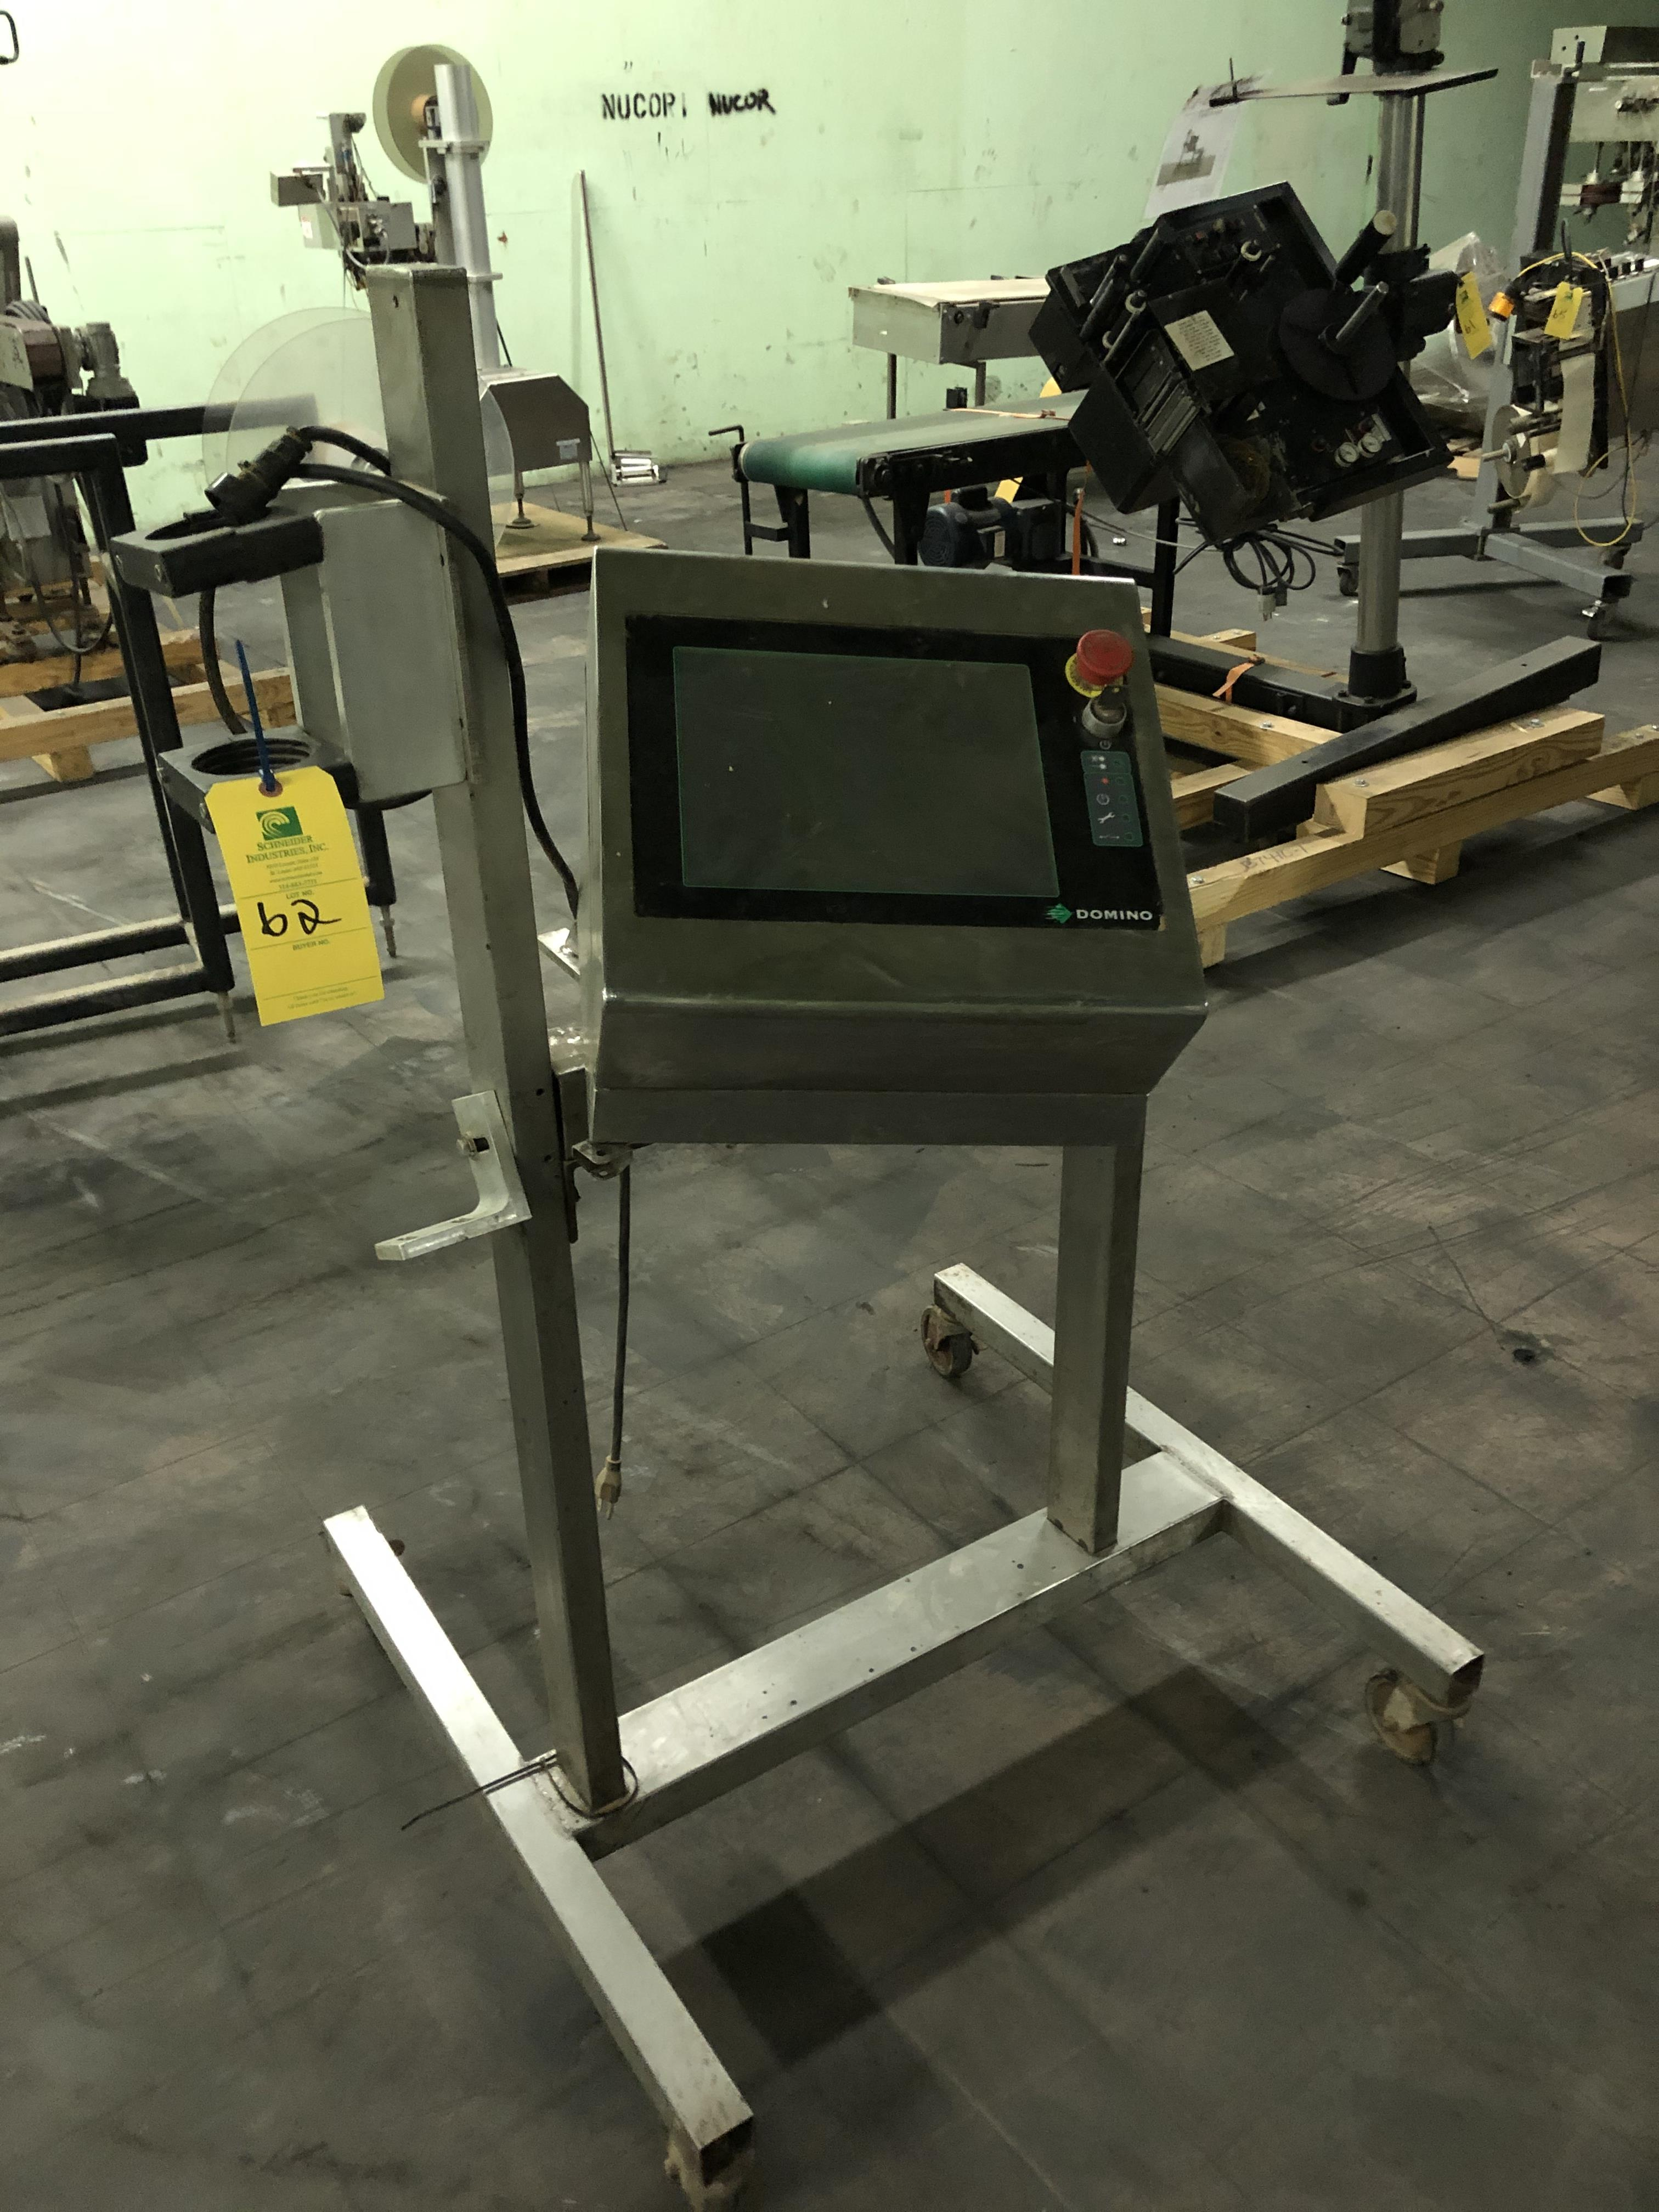 Domino S-Series Laser Printer, SS Stand w/ 4-Casters, RIGGING FEE - $50